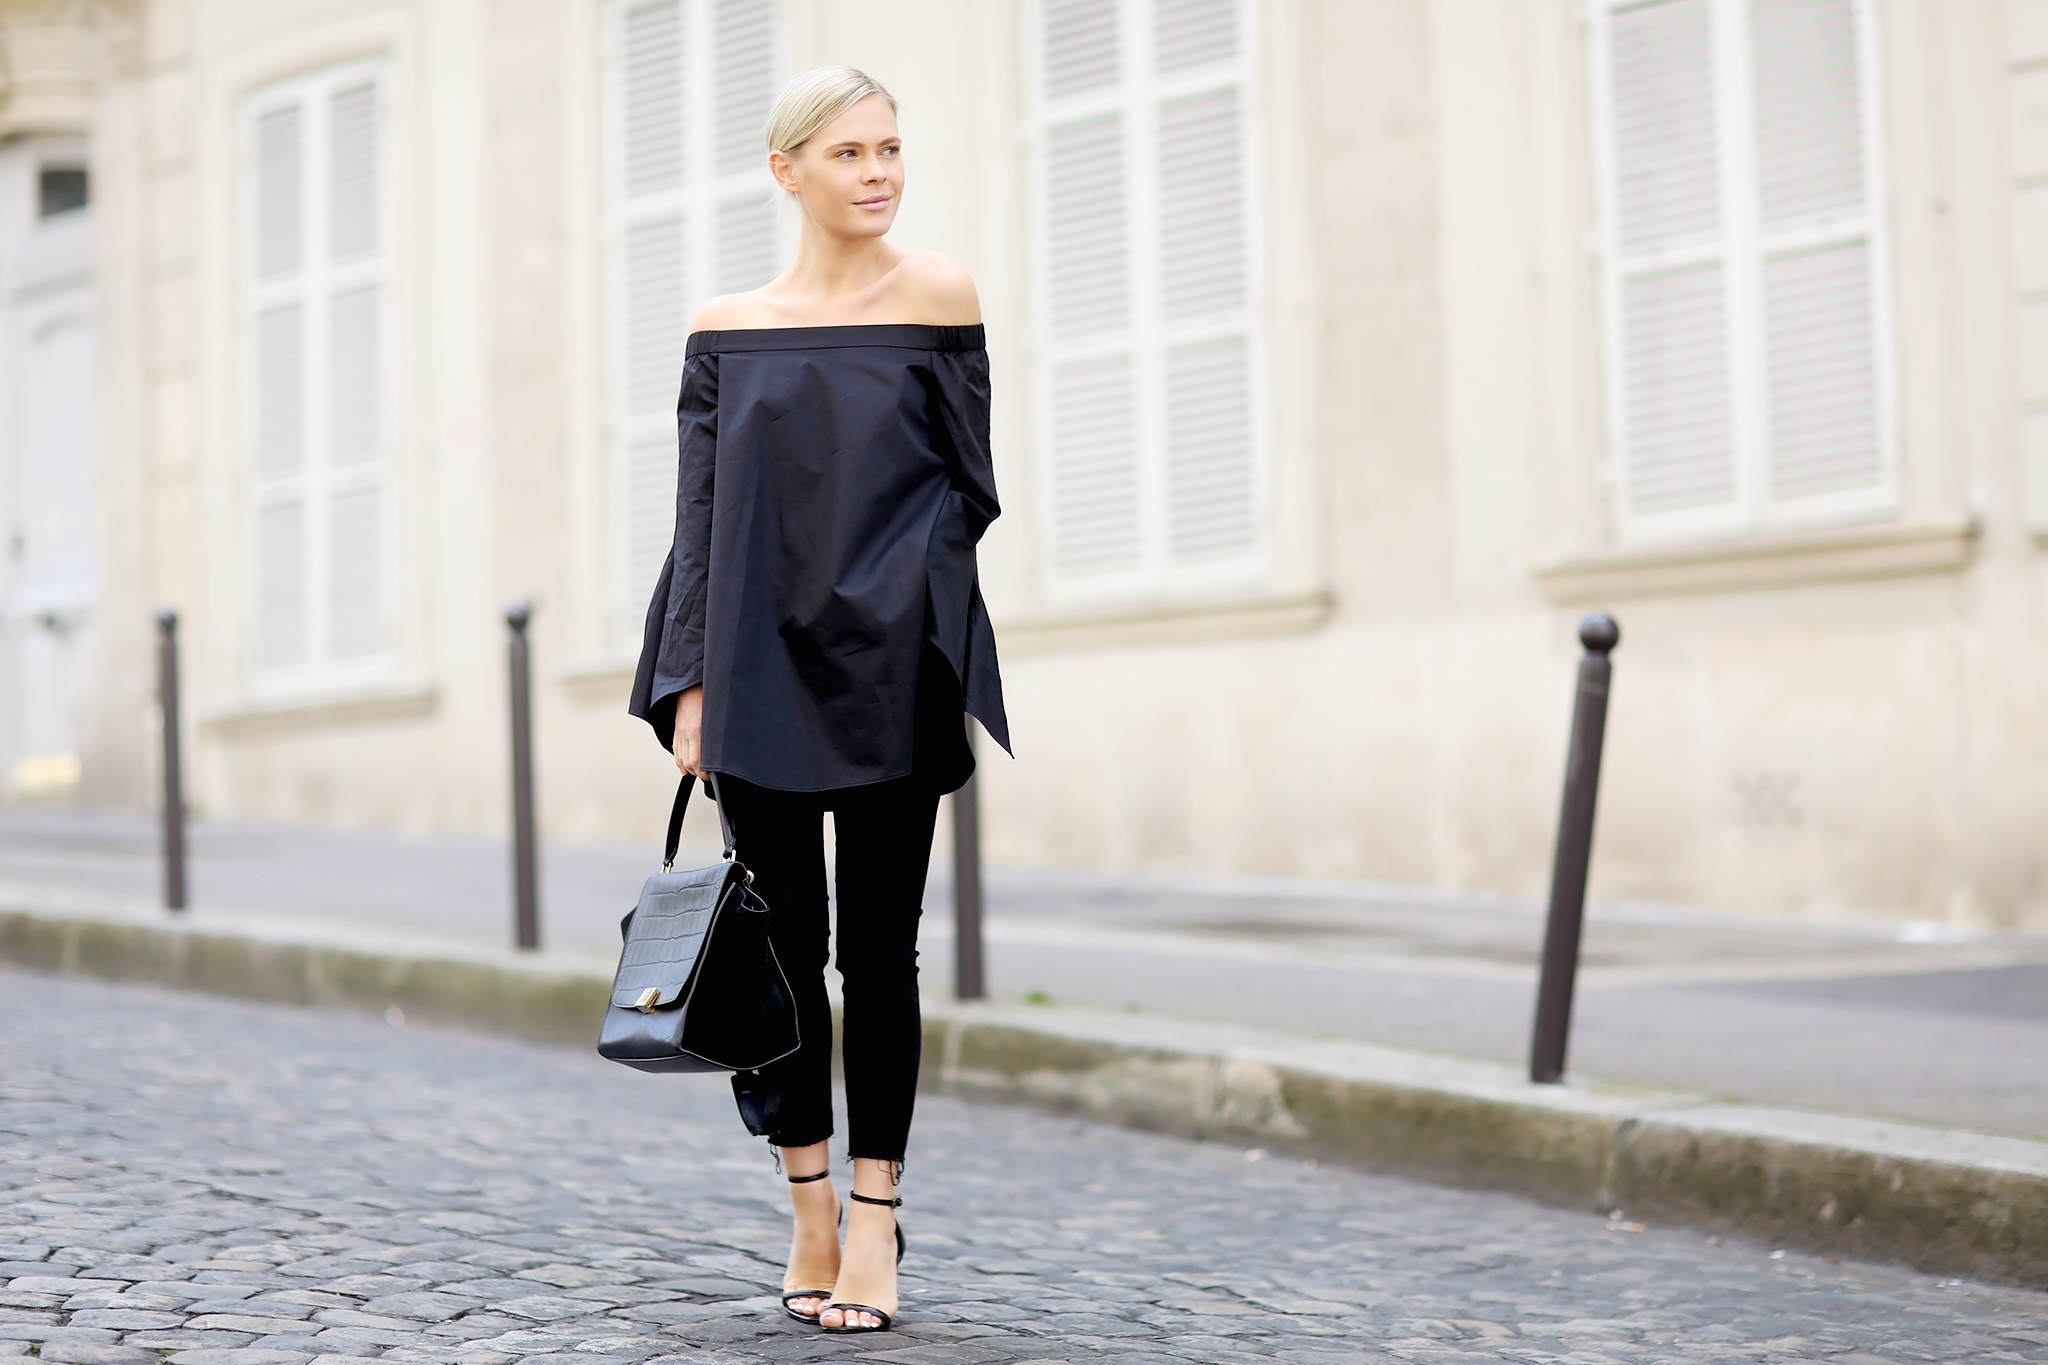 Off-the-shoulder: Your favourite summer trend is getting a major update for next season